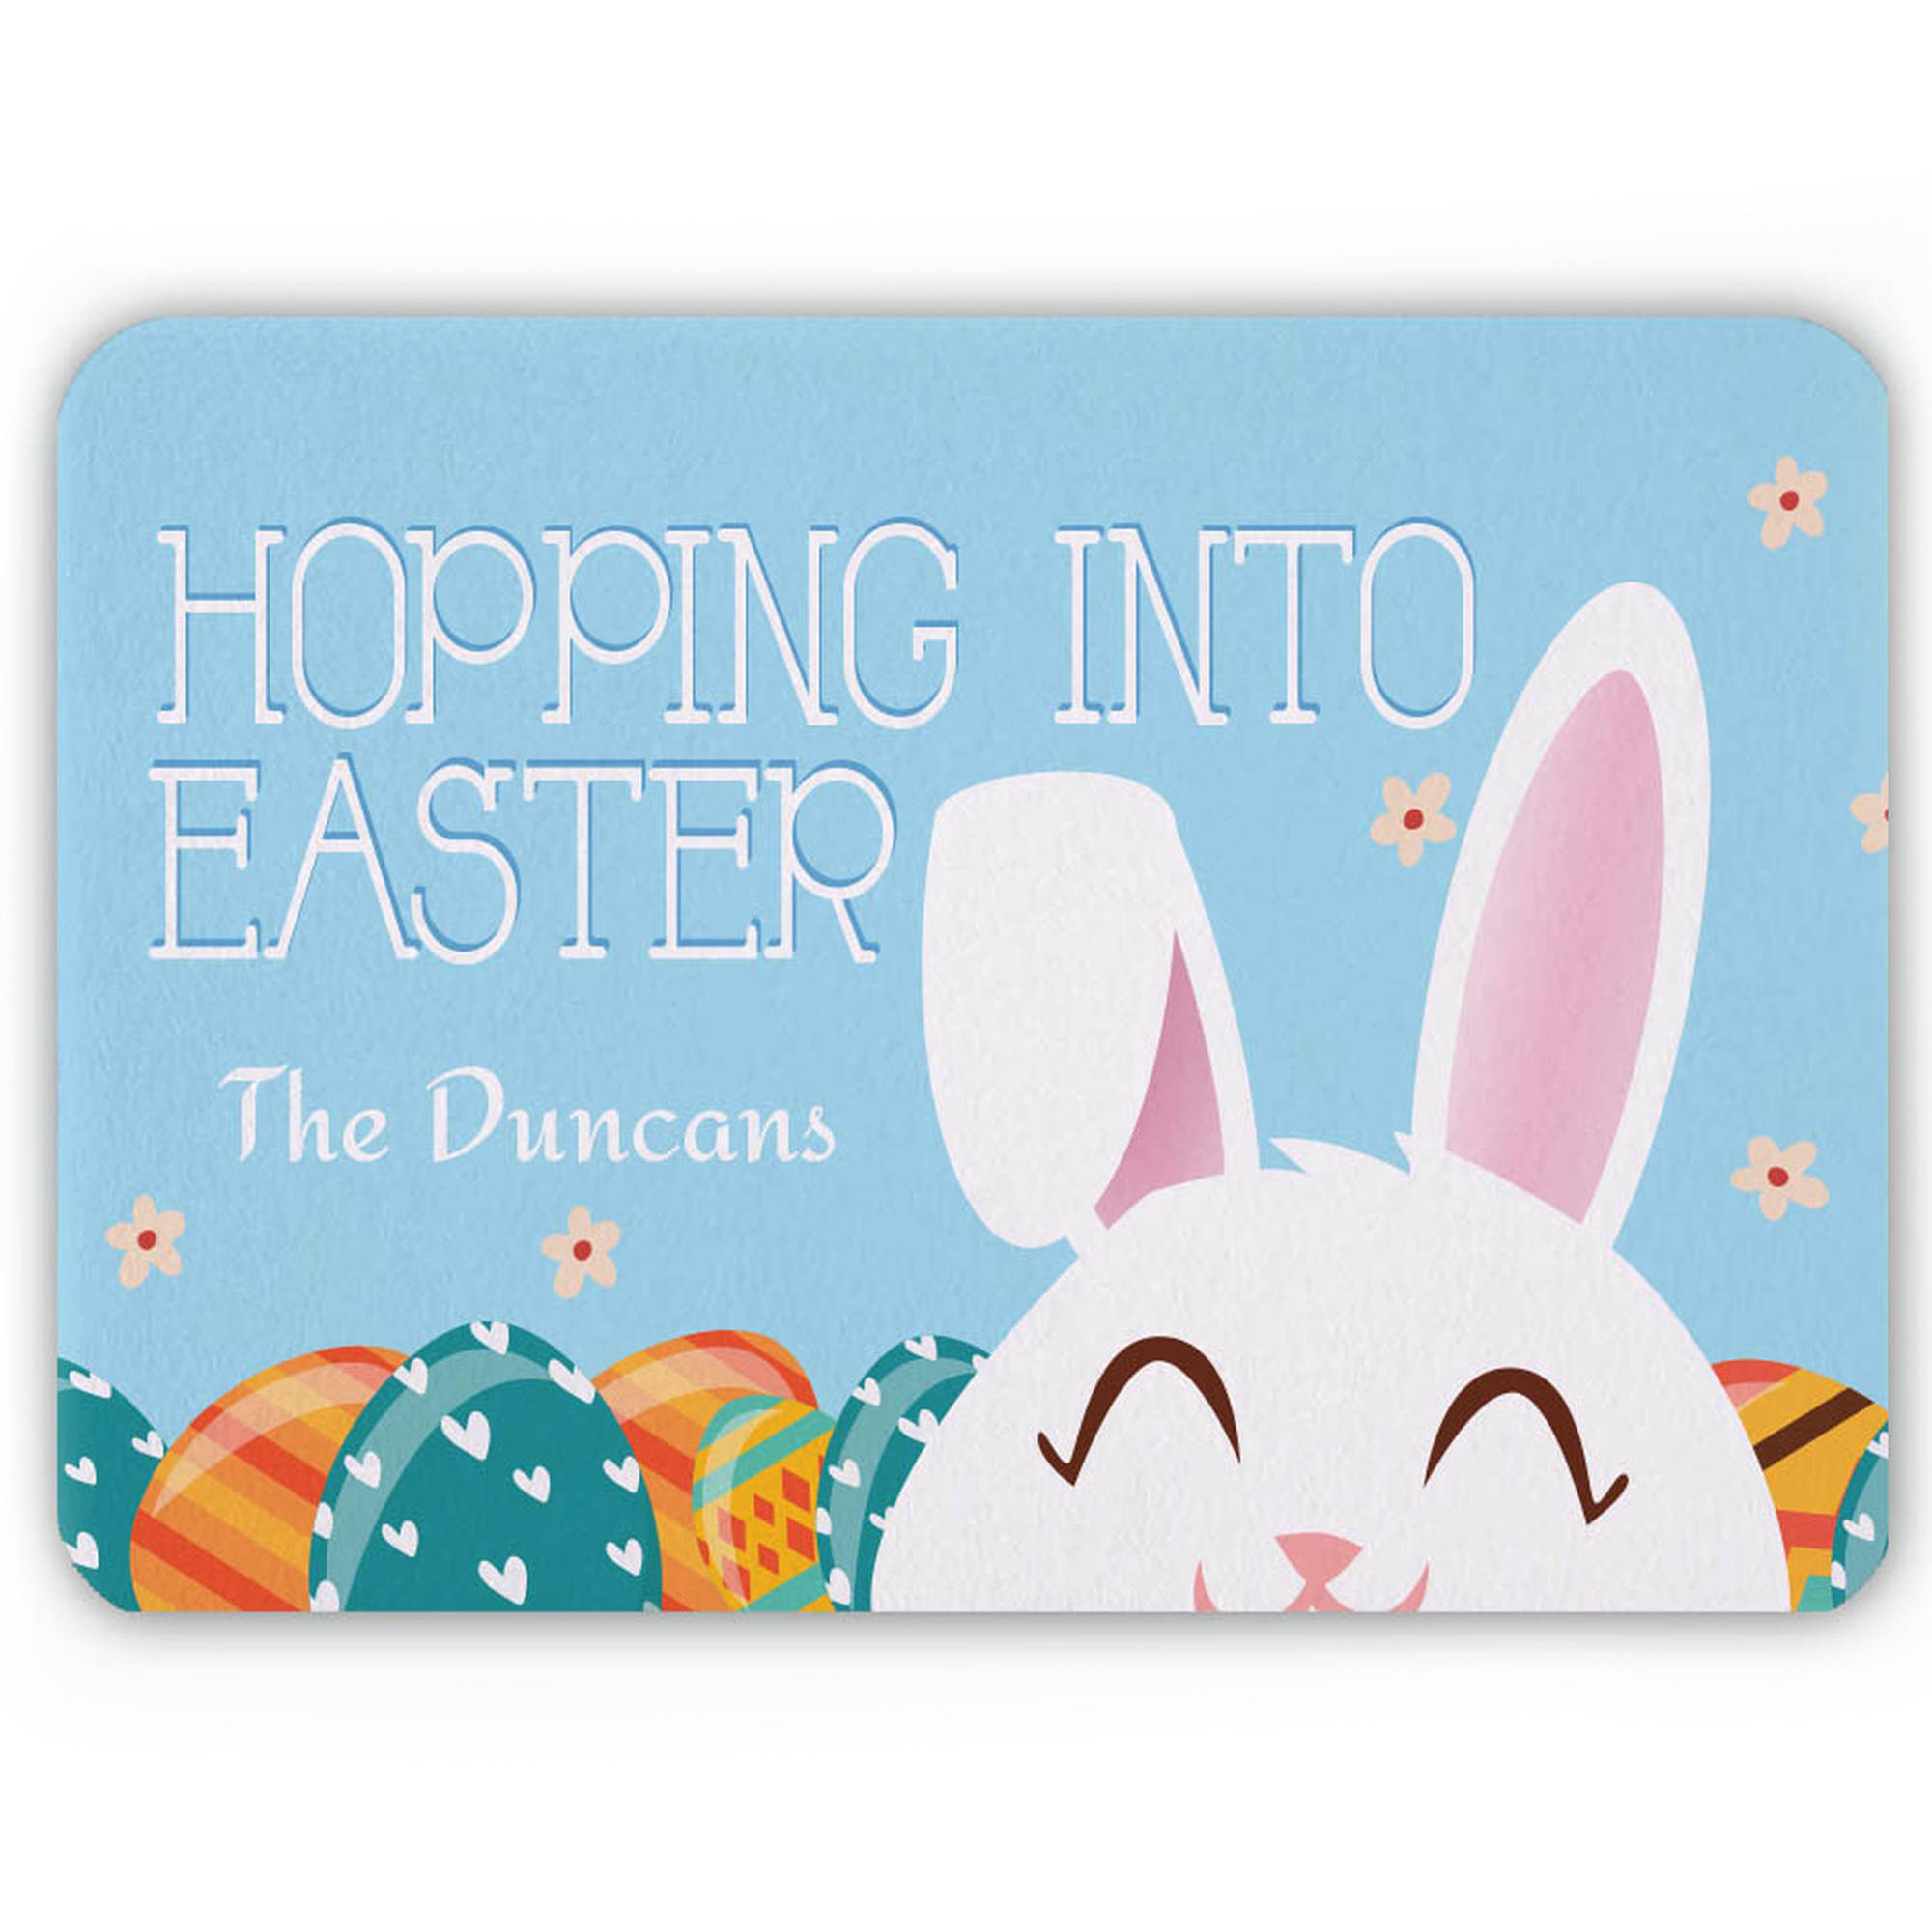 "Hopping Into Easter Personalized Floor Mat , 26.5"" x 17.5"""